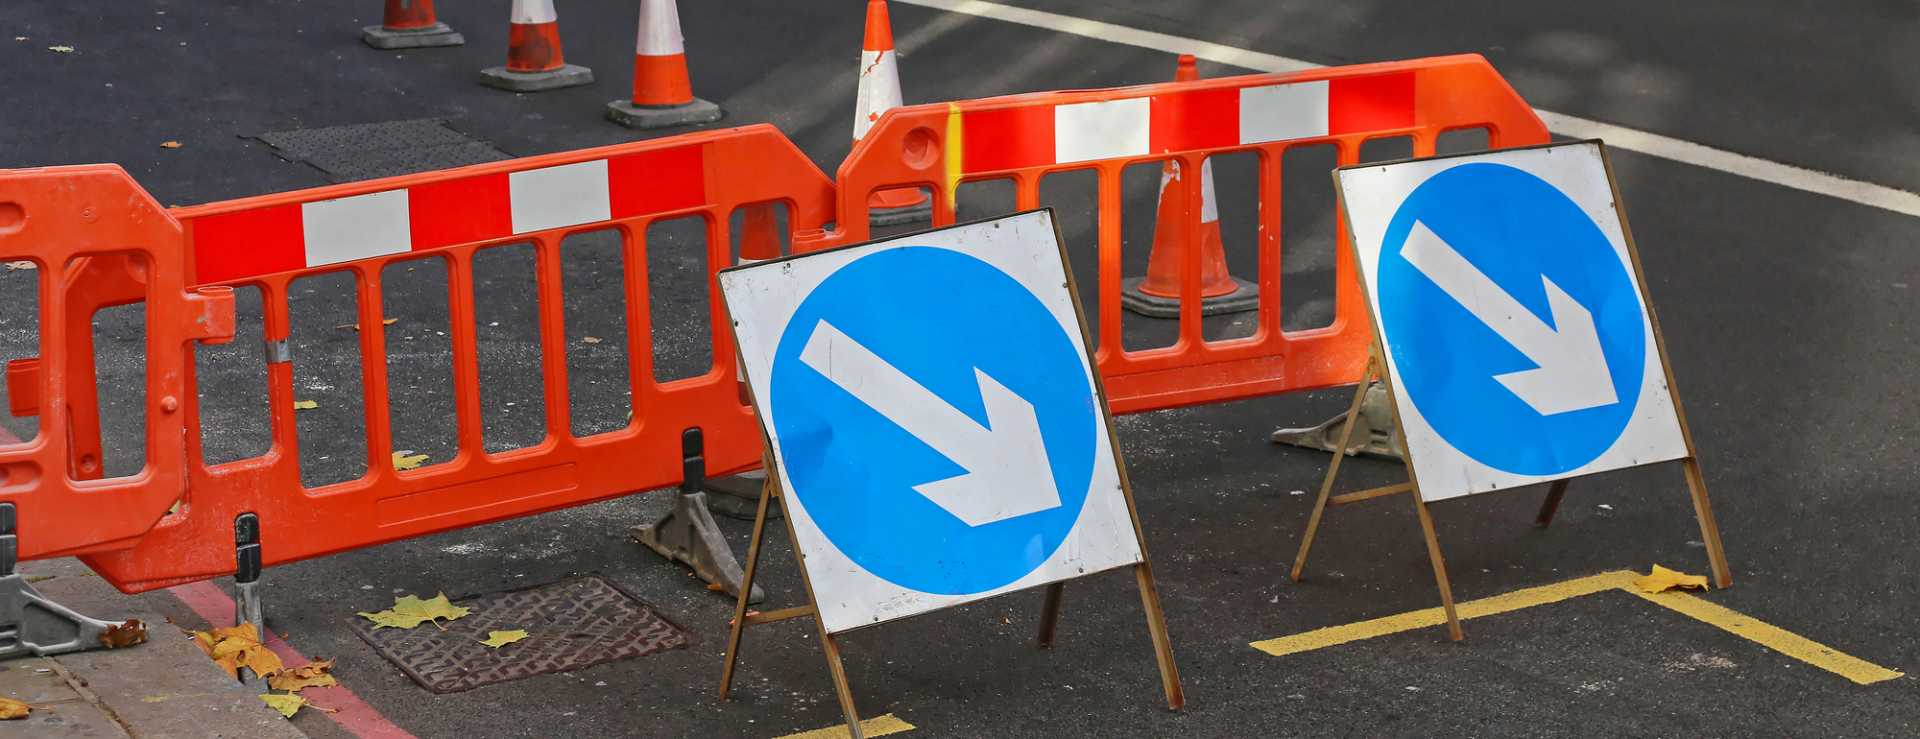 Street Works Traffic Arrows Road Maintenance - image courtesy of Depositphotos.